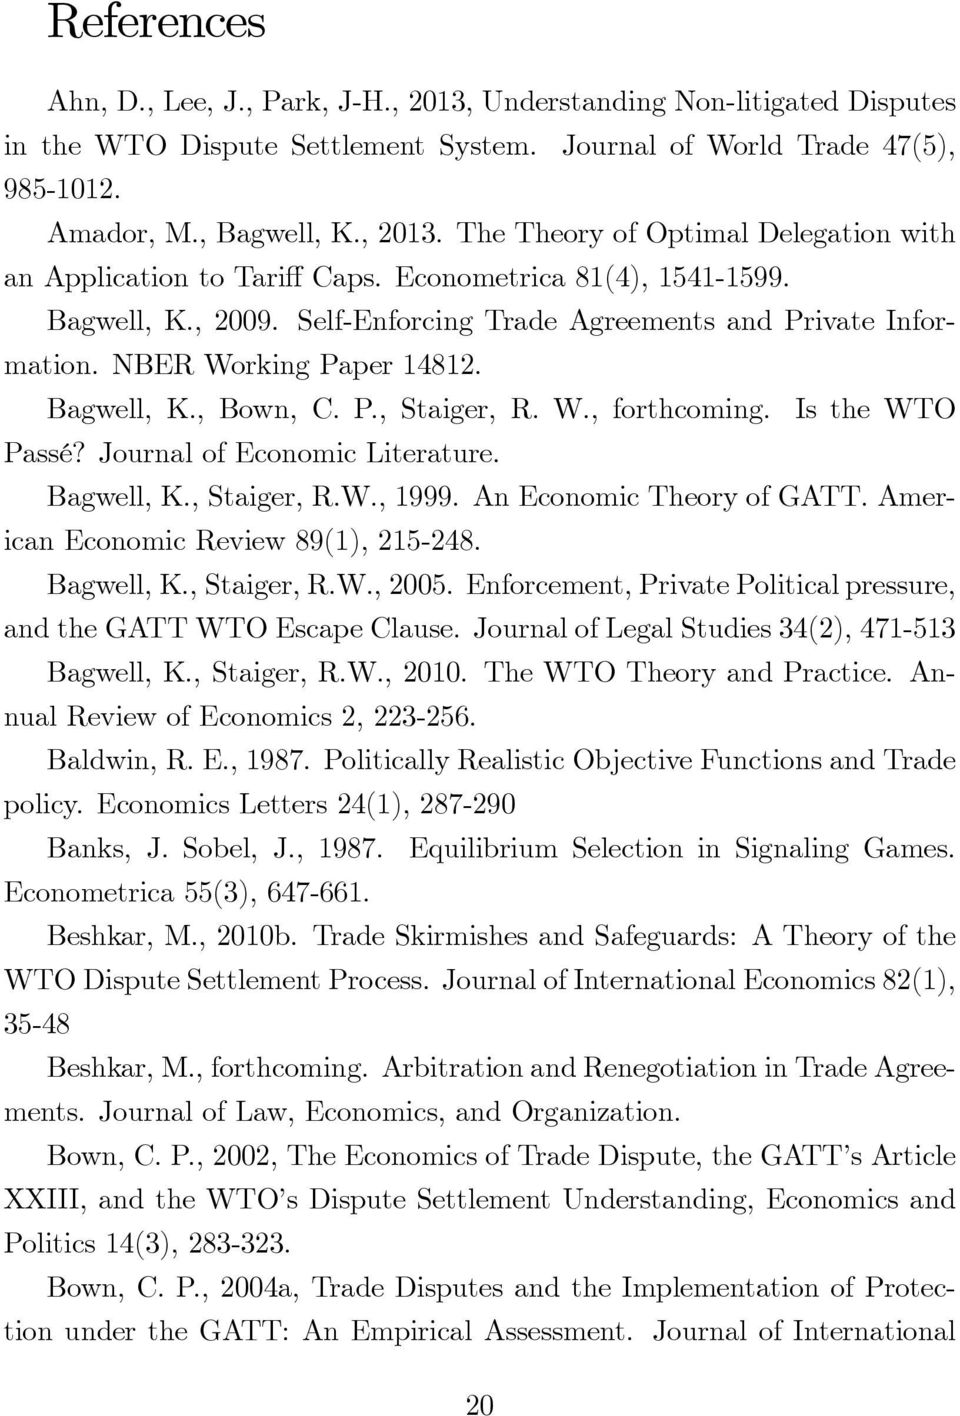 Is te WTO Passé? Journal of Economic Literature. Bagwell, K., Staiger, R.W., 1999. An Economic Teory of GATT. American Economic Review 89(1), 215-248. Bagwell, K., Staiger, R.W., 2005.